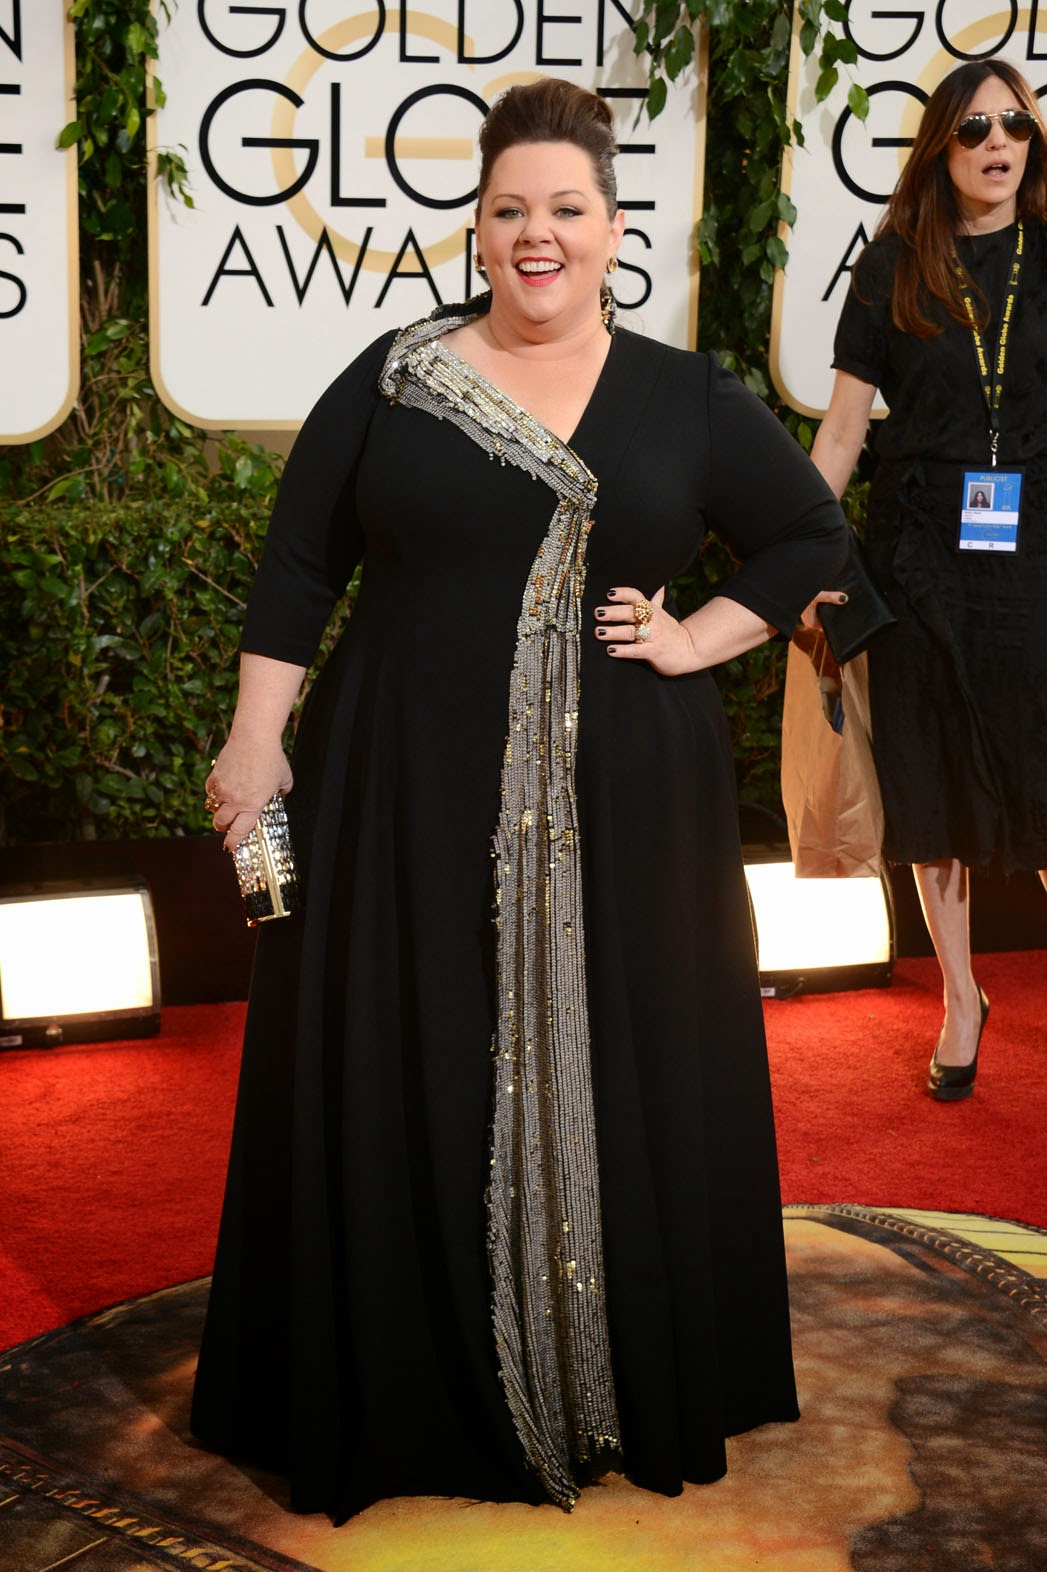 Mode-sty: Modest dresses at the 2014 Golden Globes